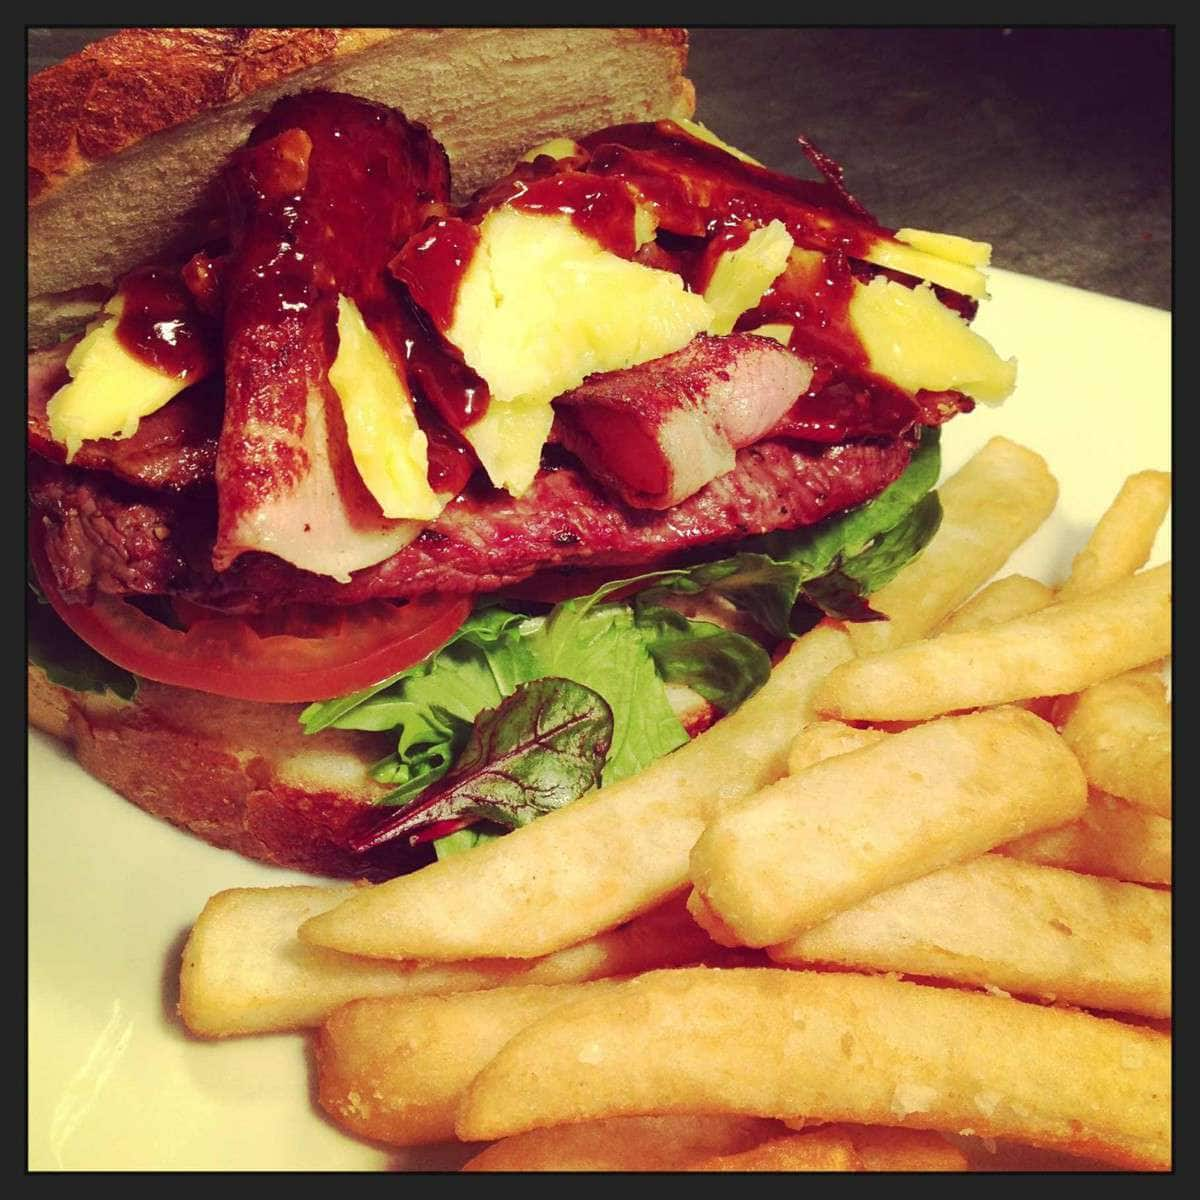 McColls Kitchen @ Dicey Rileys Hotel | 333 Crown Street, Wollongong, New South Wales 2500 | +61 2 4244 2881